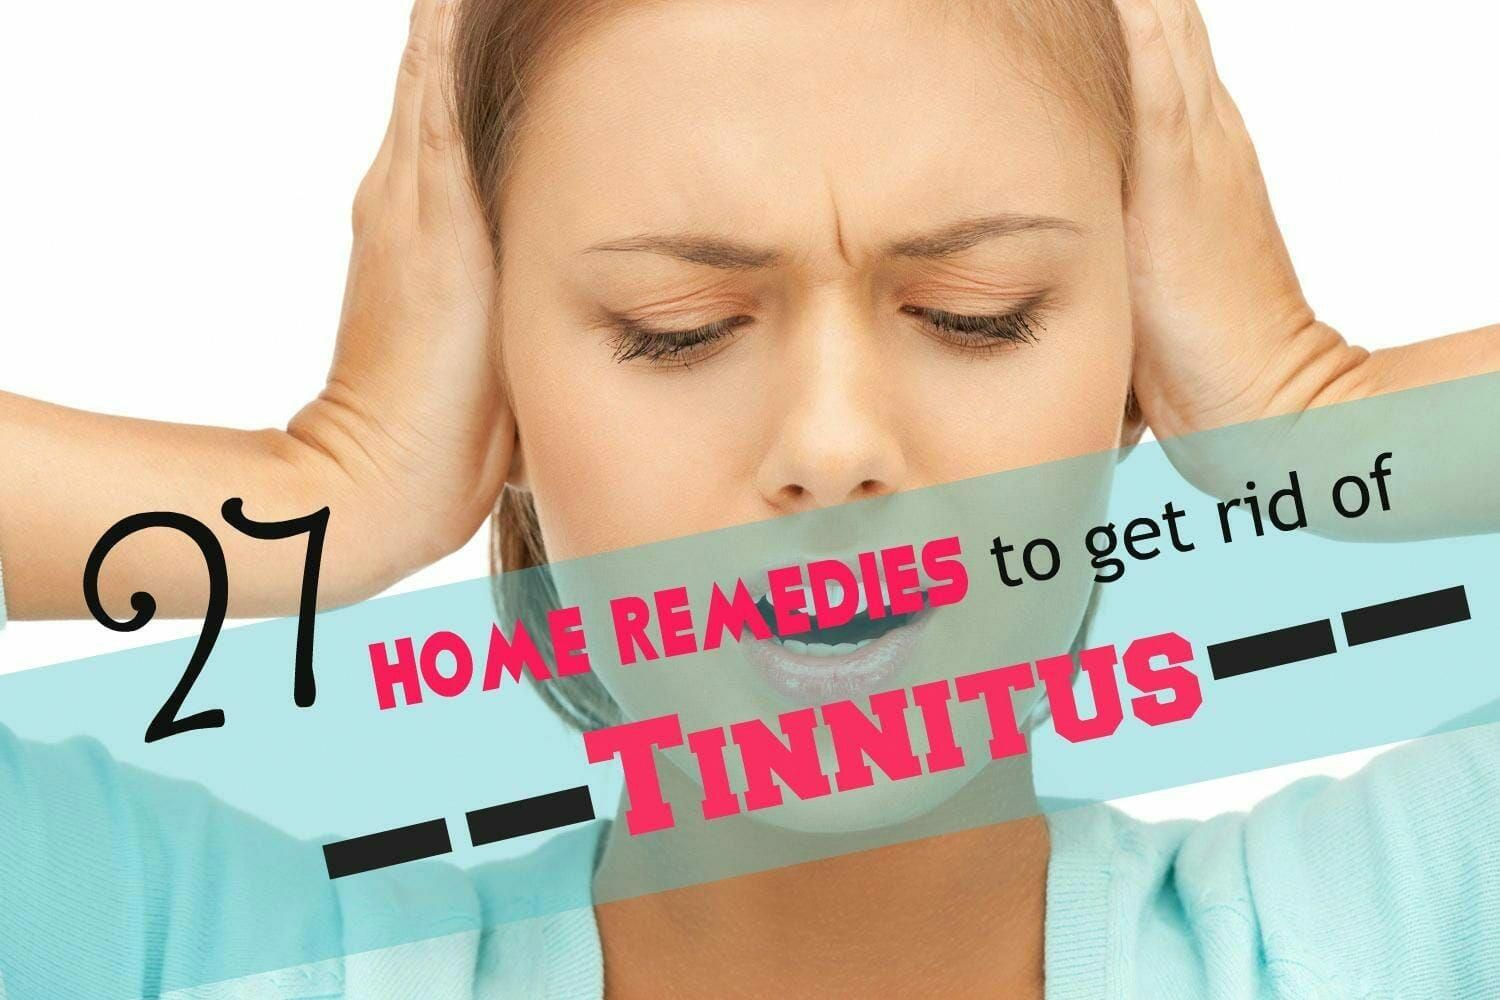 Tinnitus or hyperacusis is characterized by constant